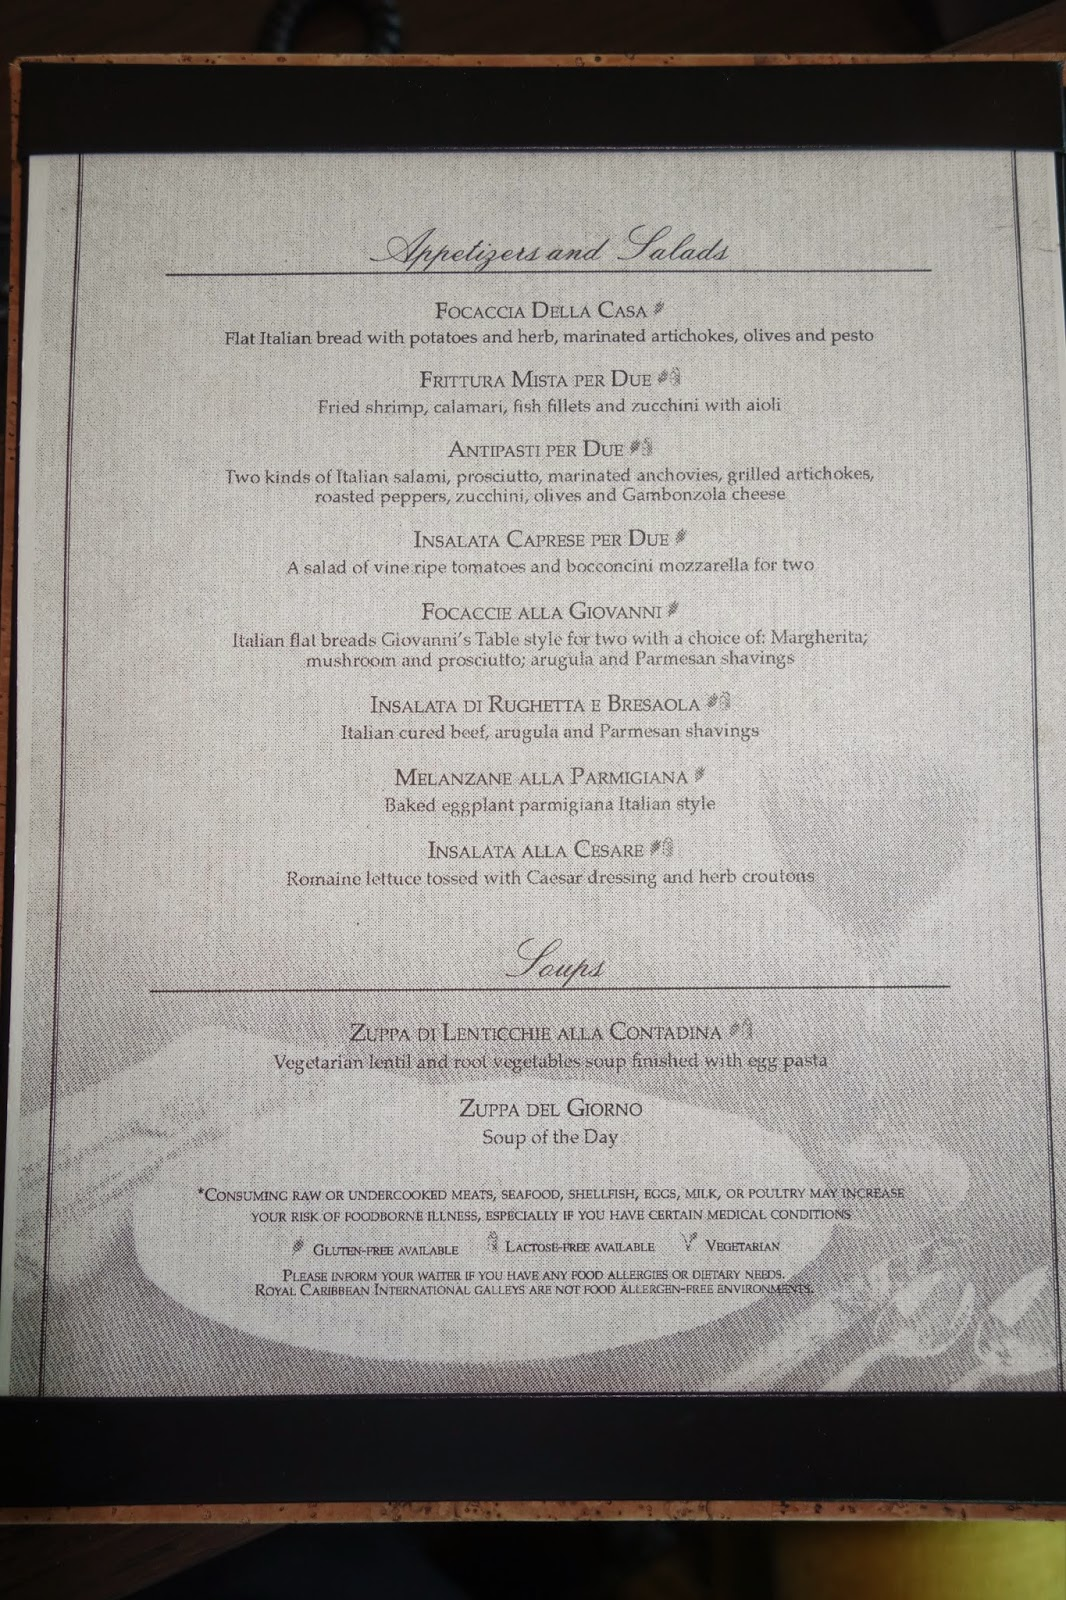 Guitar 123 Singapore Food And Travel Blog Adventure Of The Seas Giovanni S Table Menus